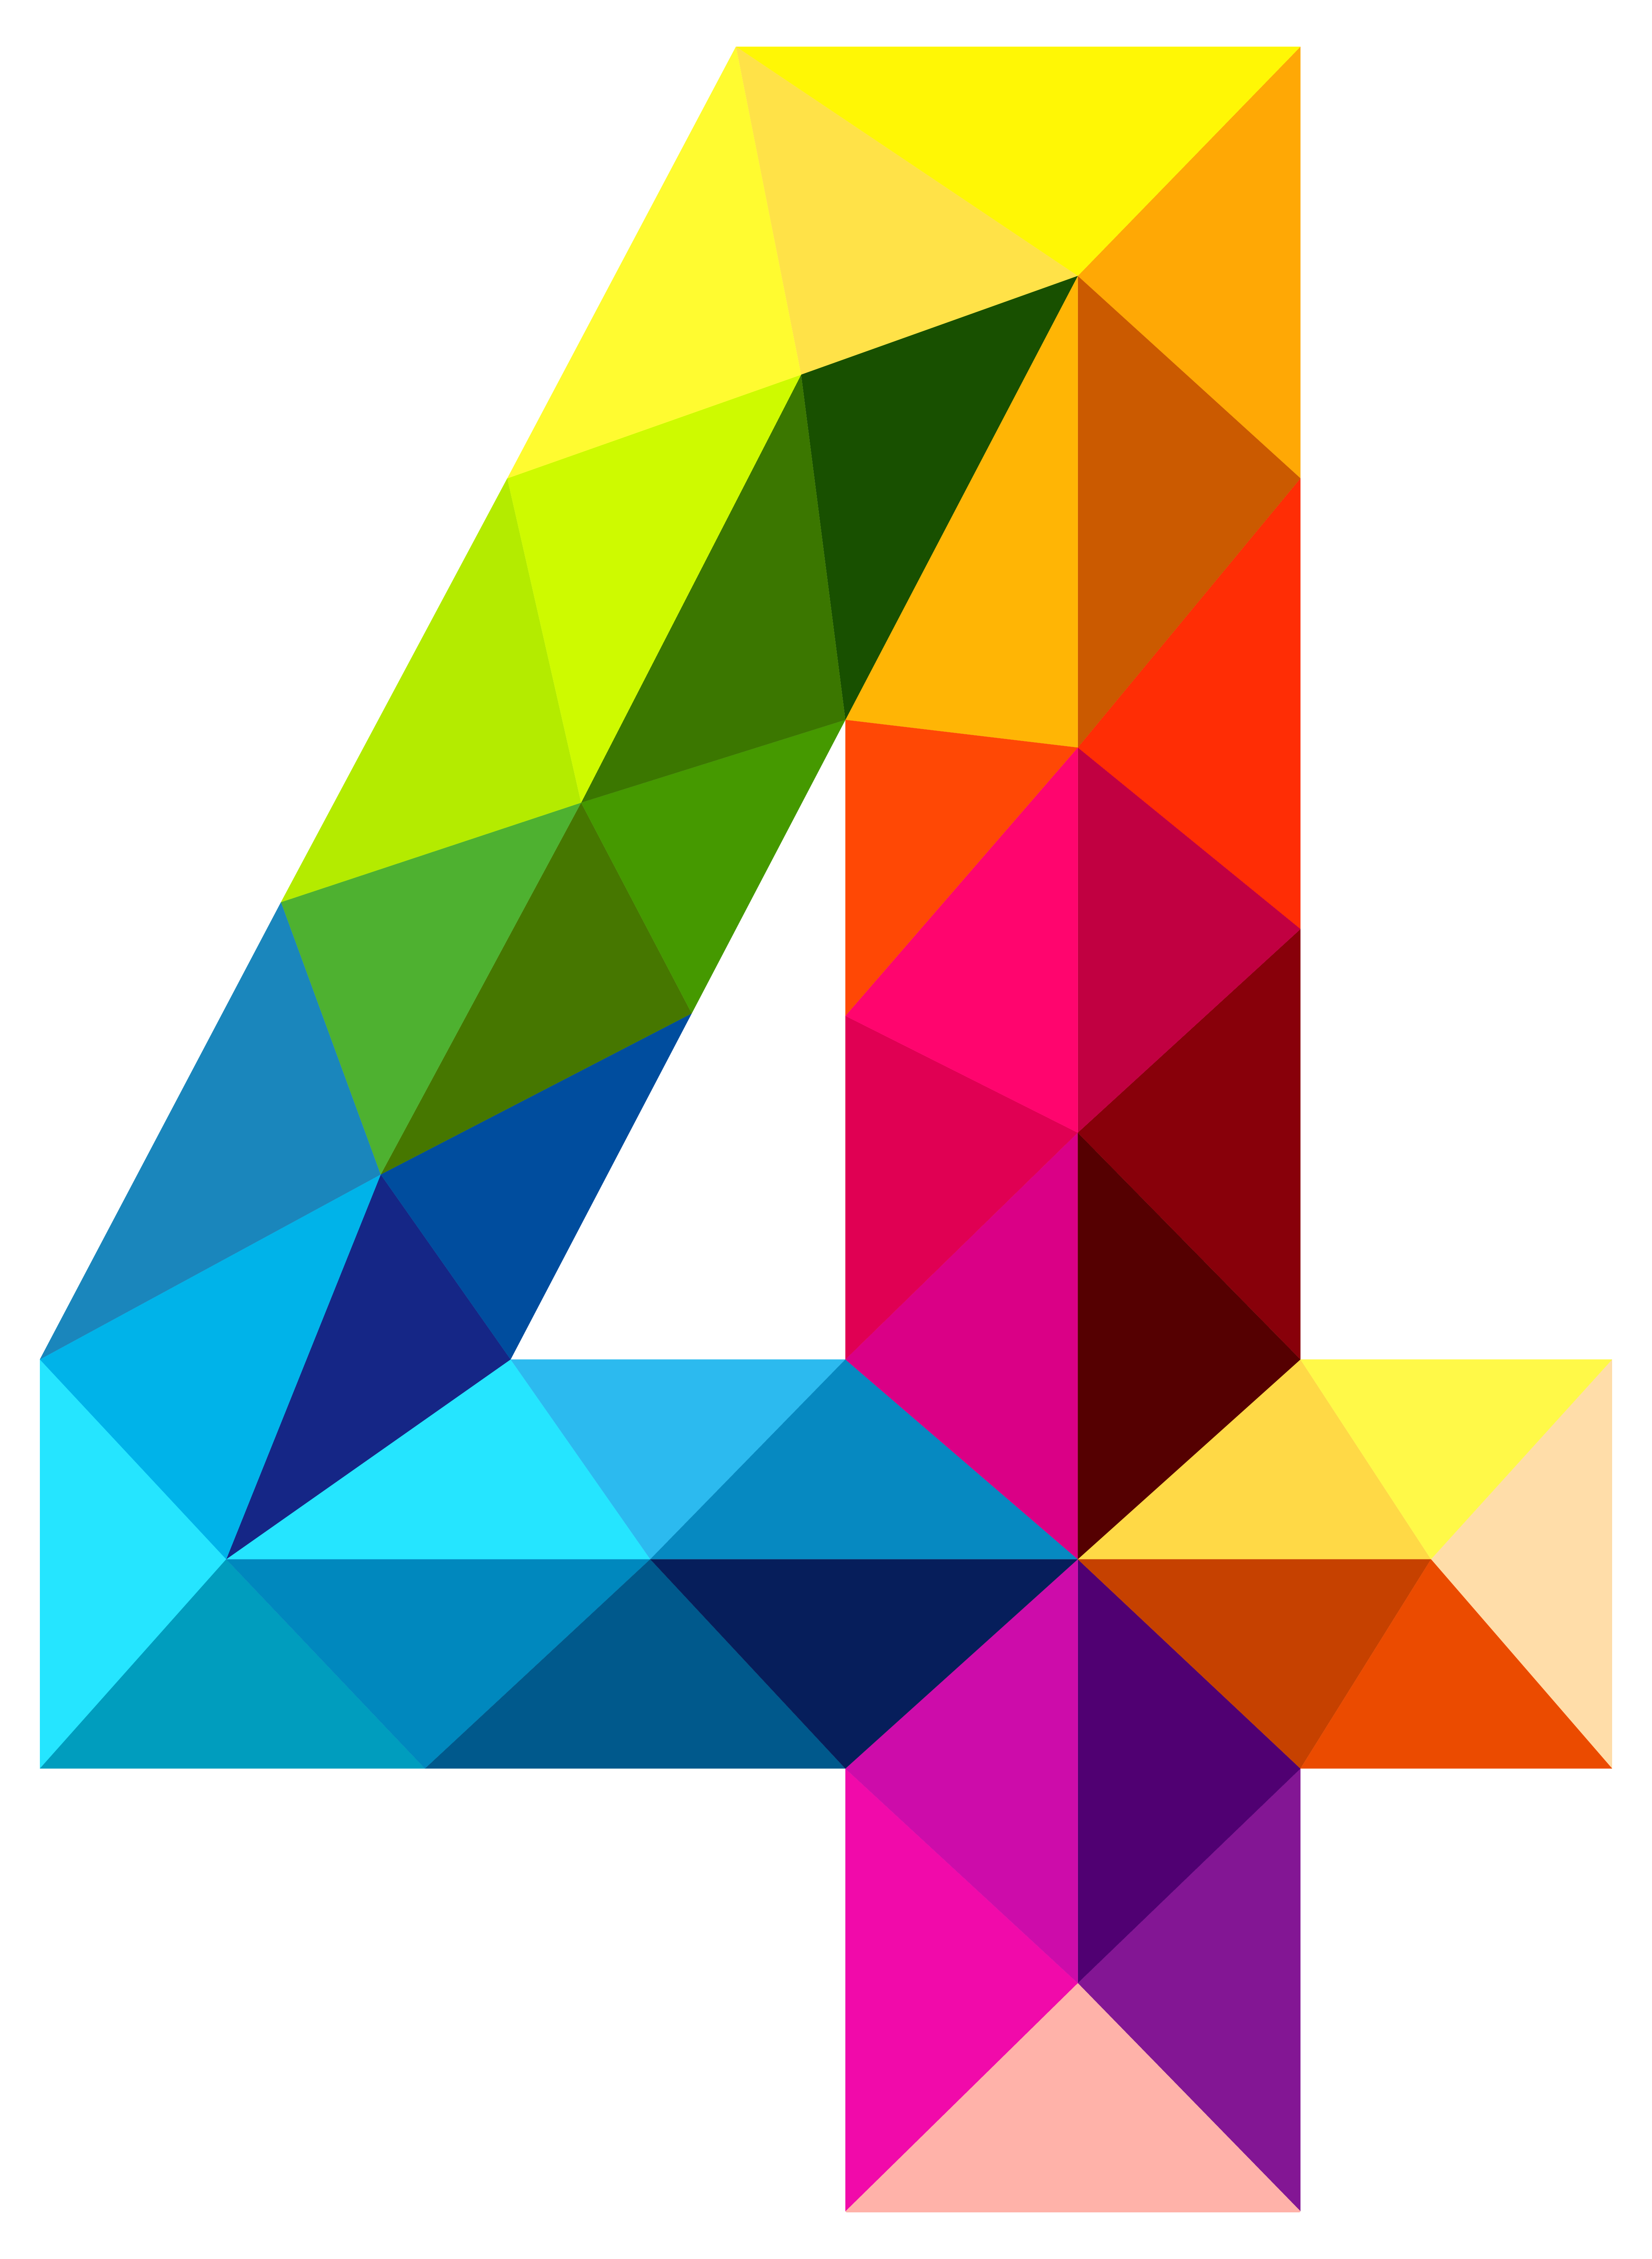 Colourful Triangles Number Four Png Clipart Image Gallery Yopriceville High Quality Images And Transpare Shablony Trafaretov Shablony Pechati Detskie Kartiny